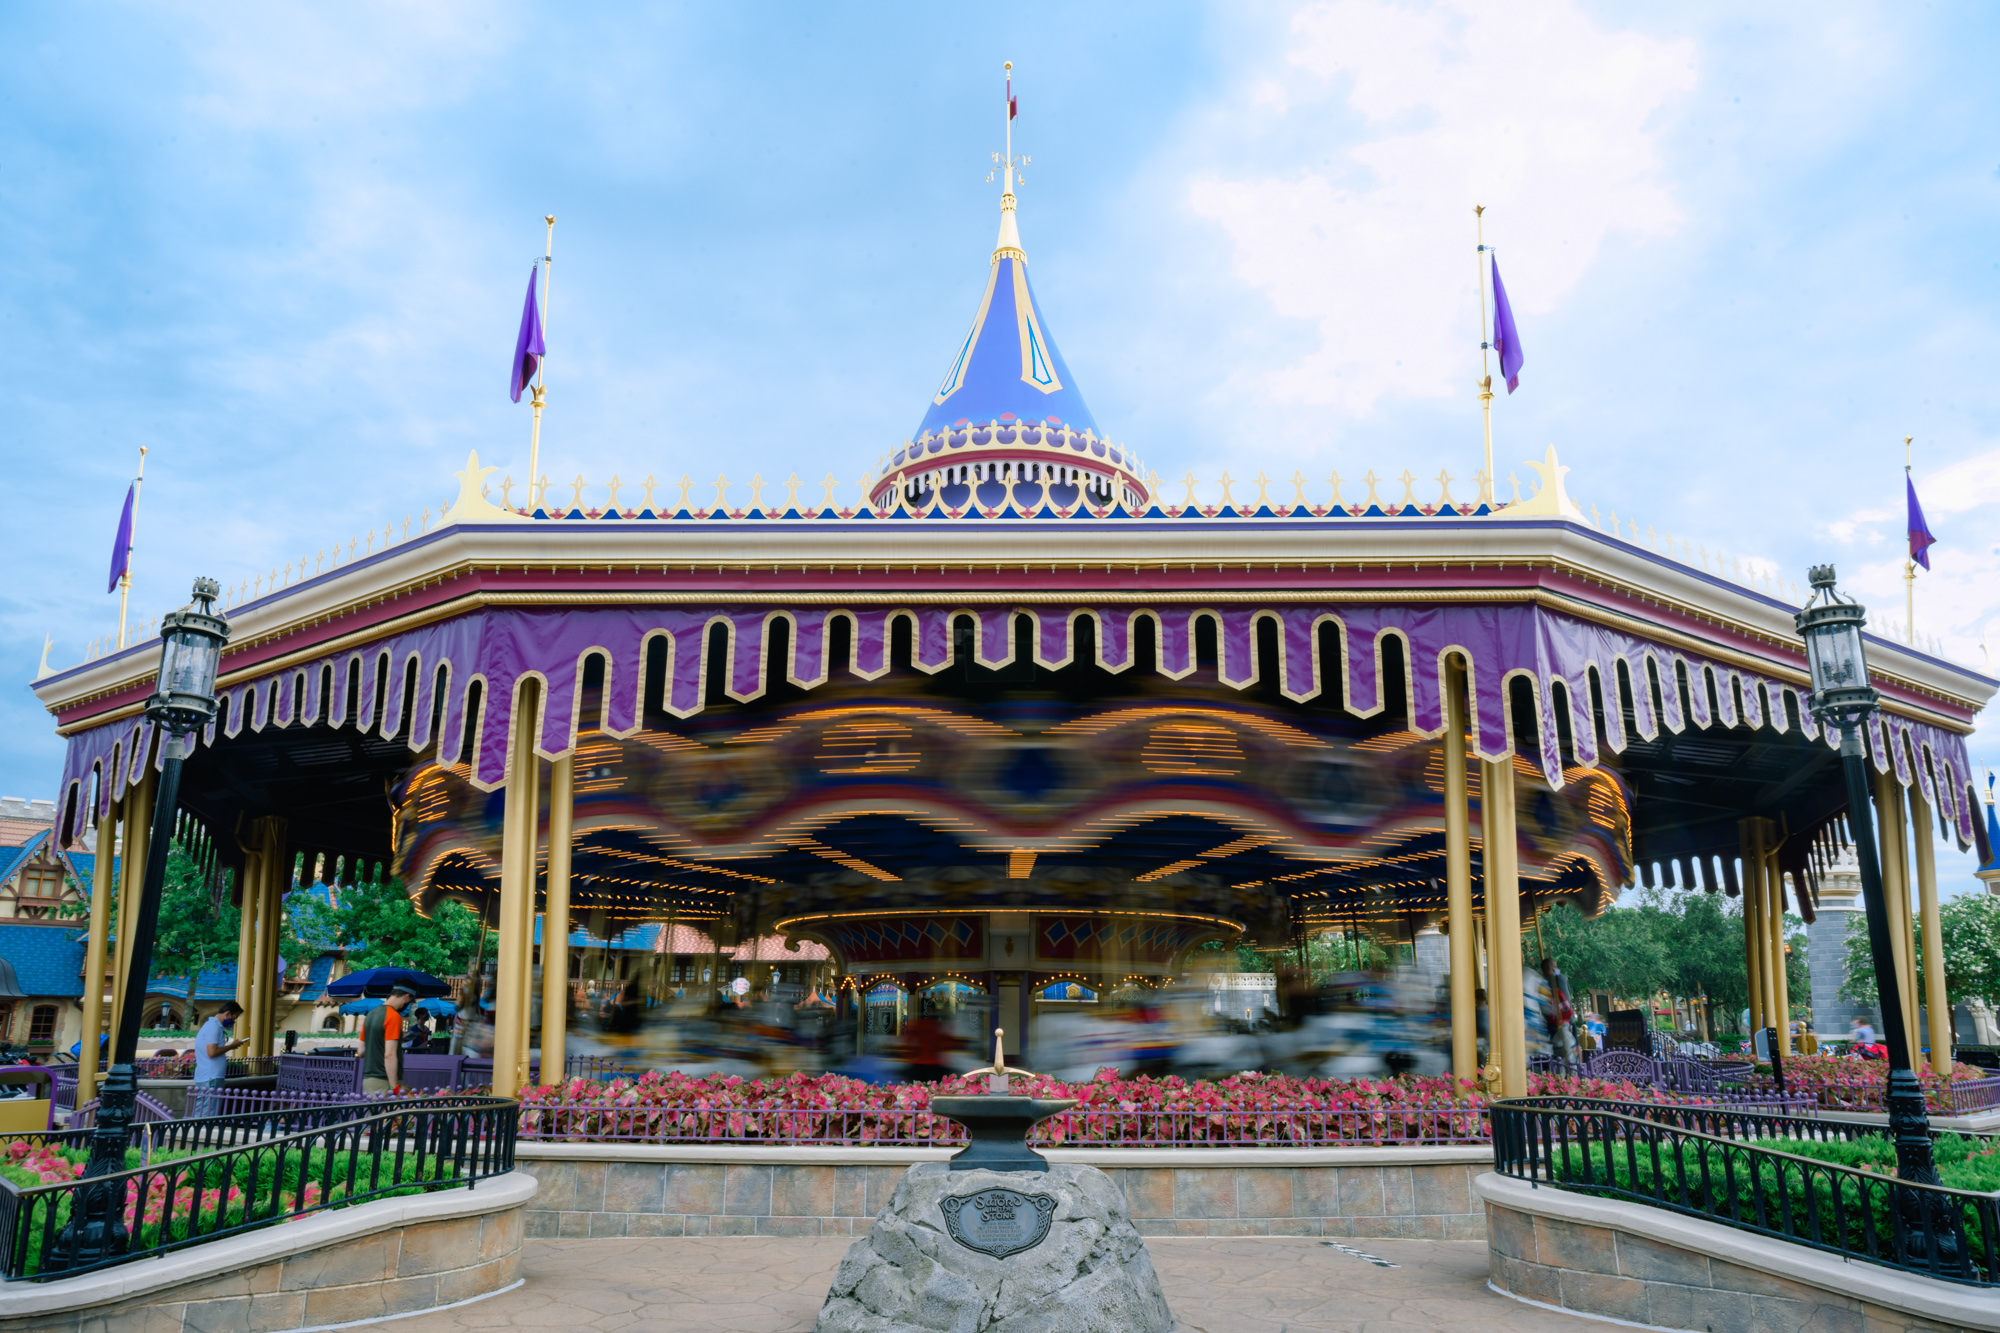 Prince Charming's Carousel in motion